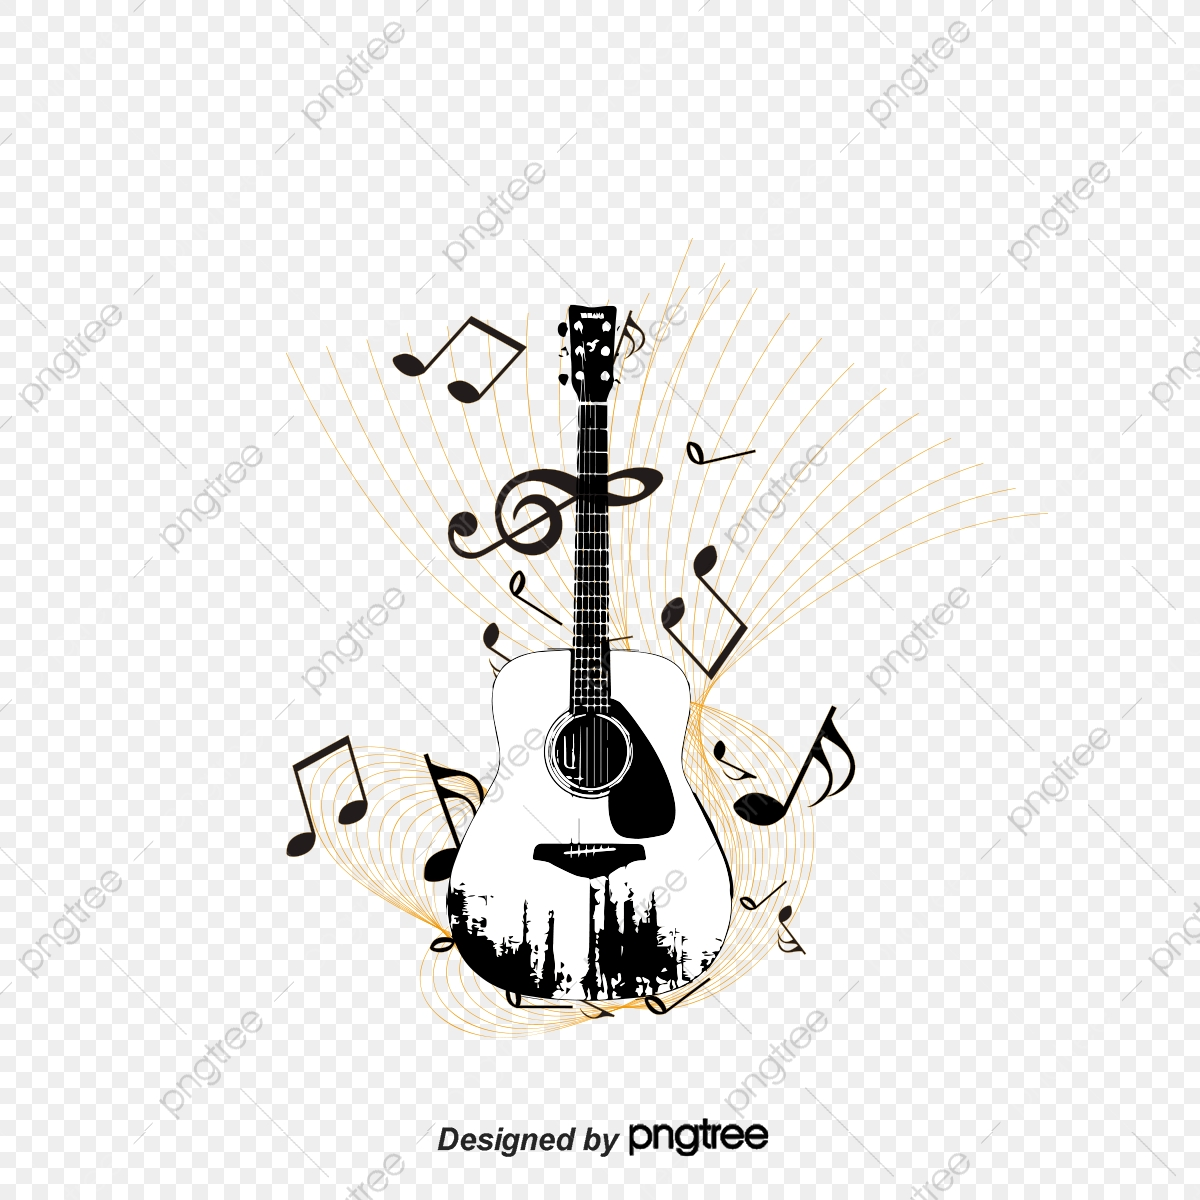 Music Notes Icons Set Vector Stock Illustration - Download Image Now -  iStock